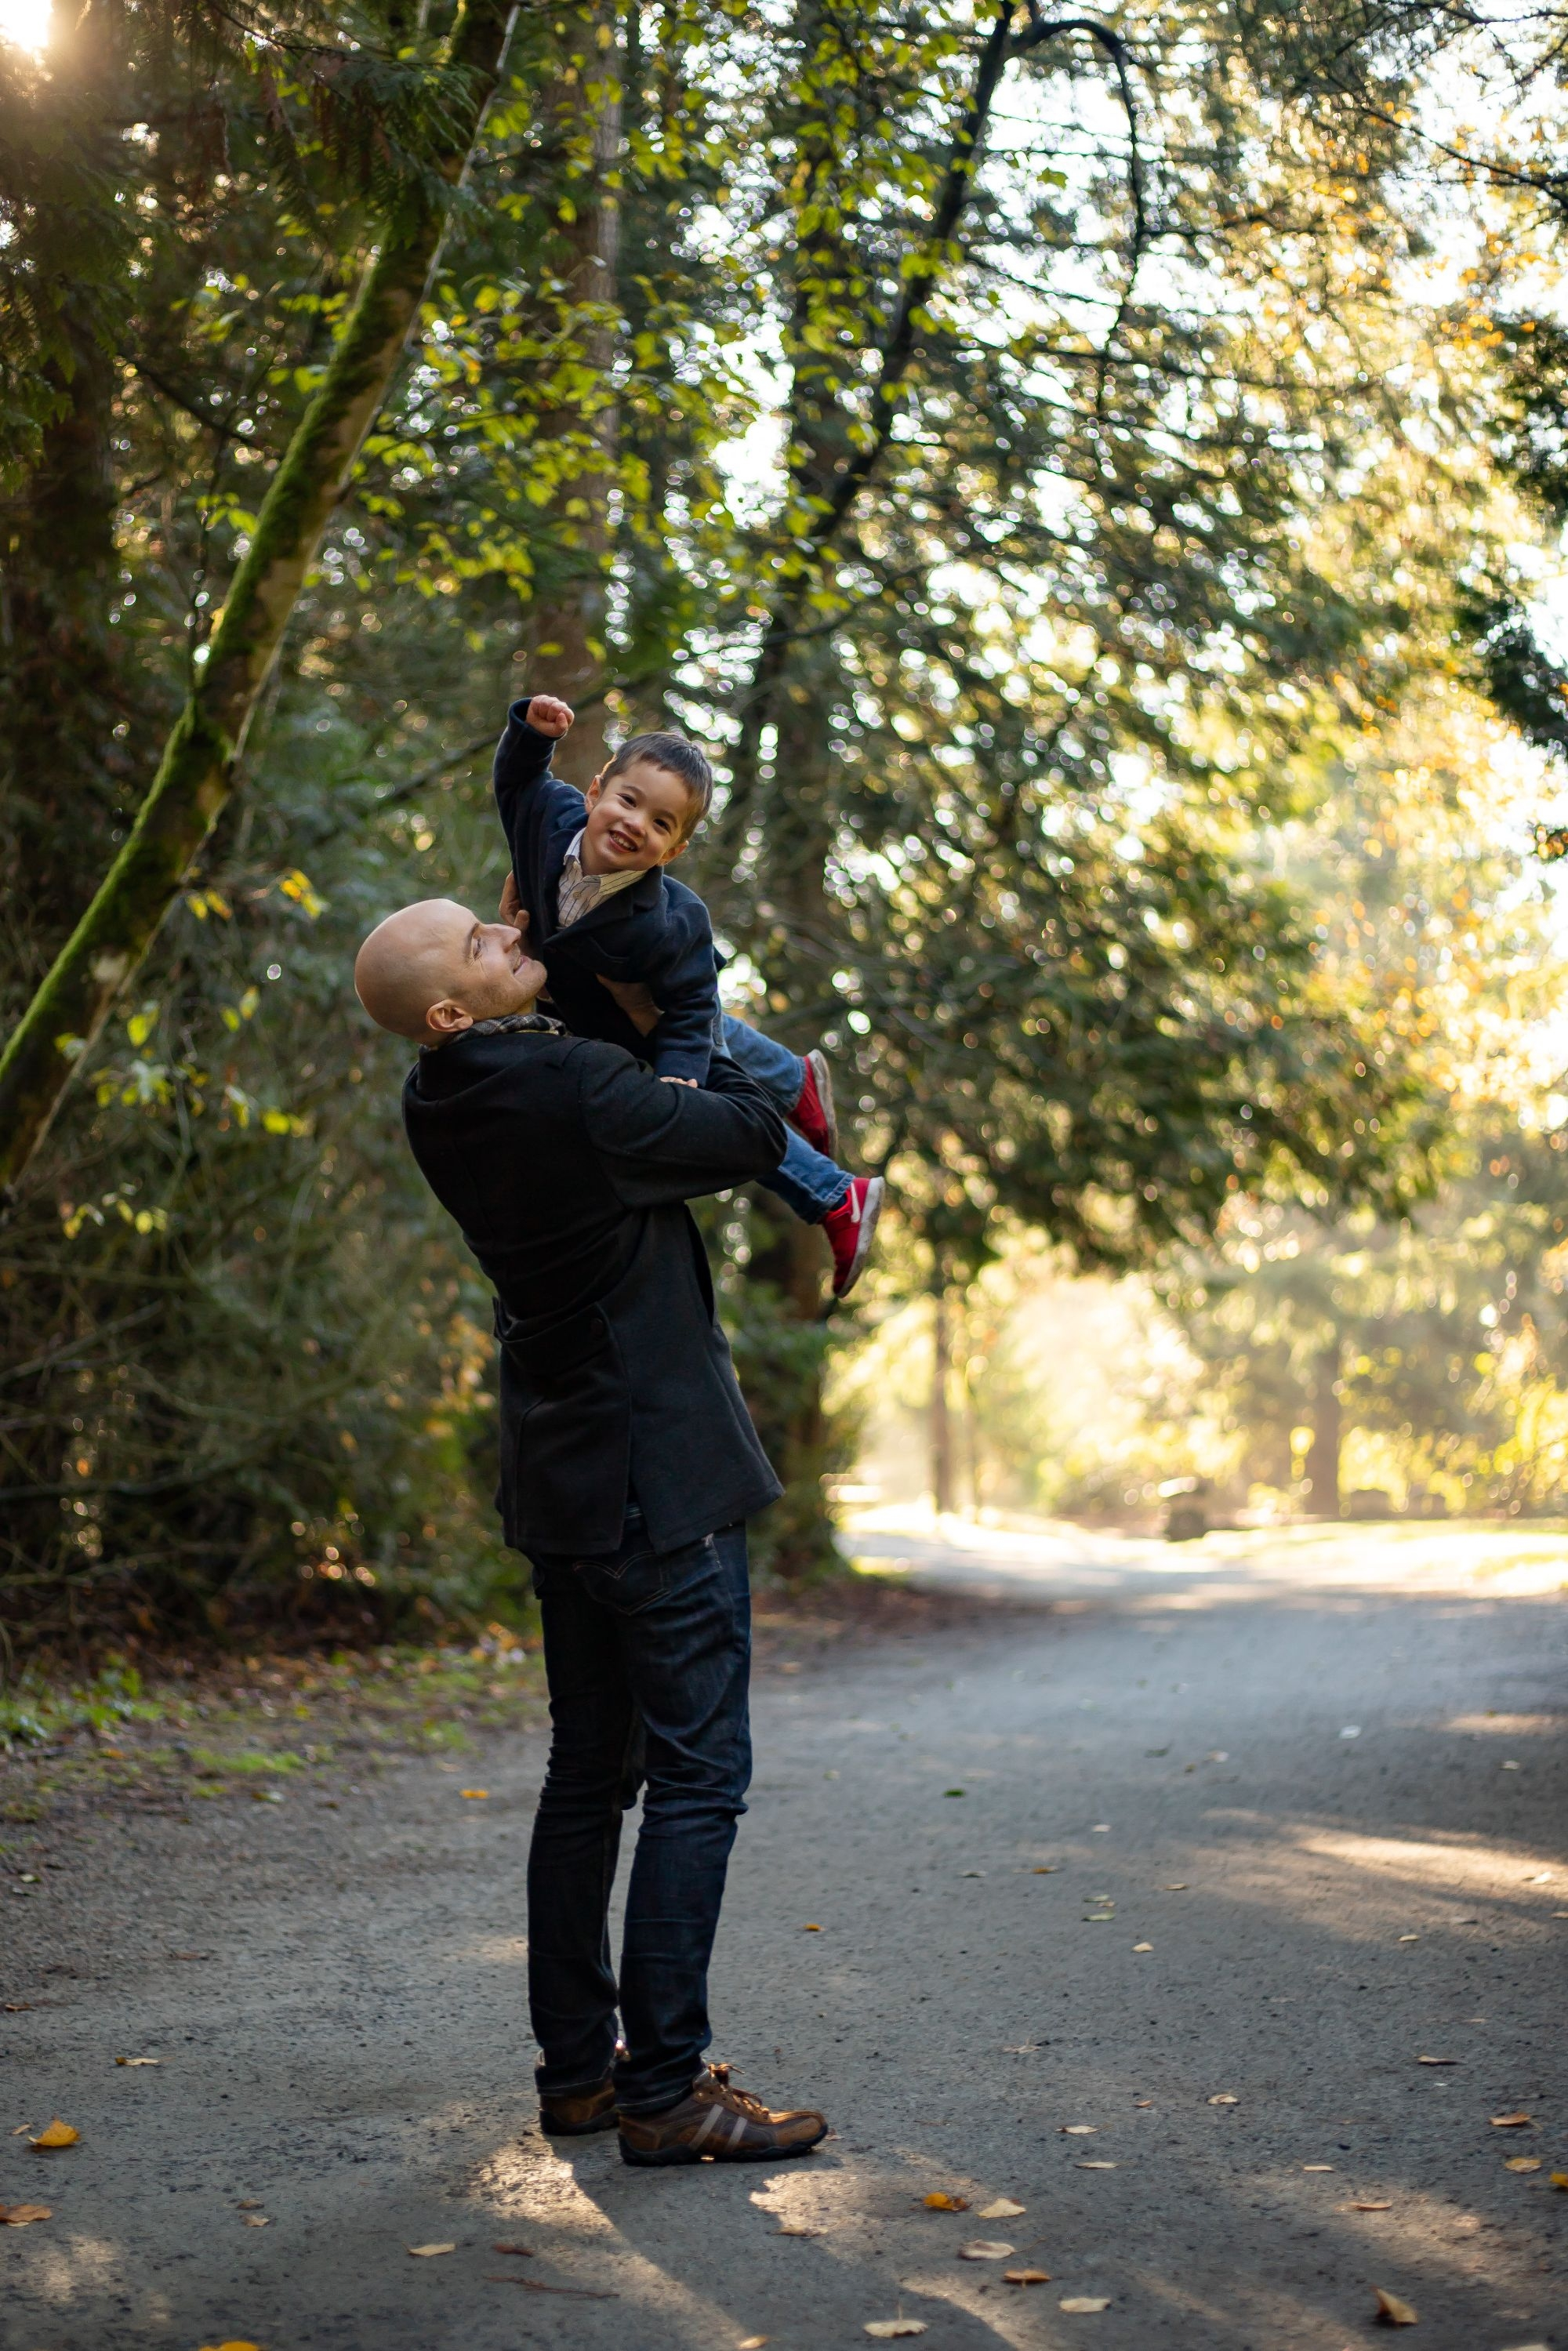 Hannah T. Photography's Central Park Family Full Session Family Photo Vancouver, BC, Canada